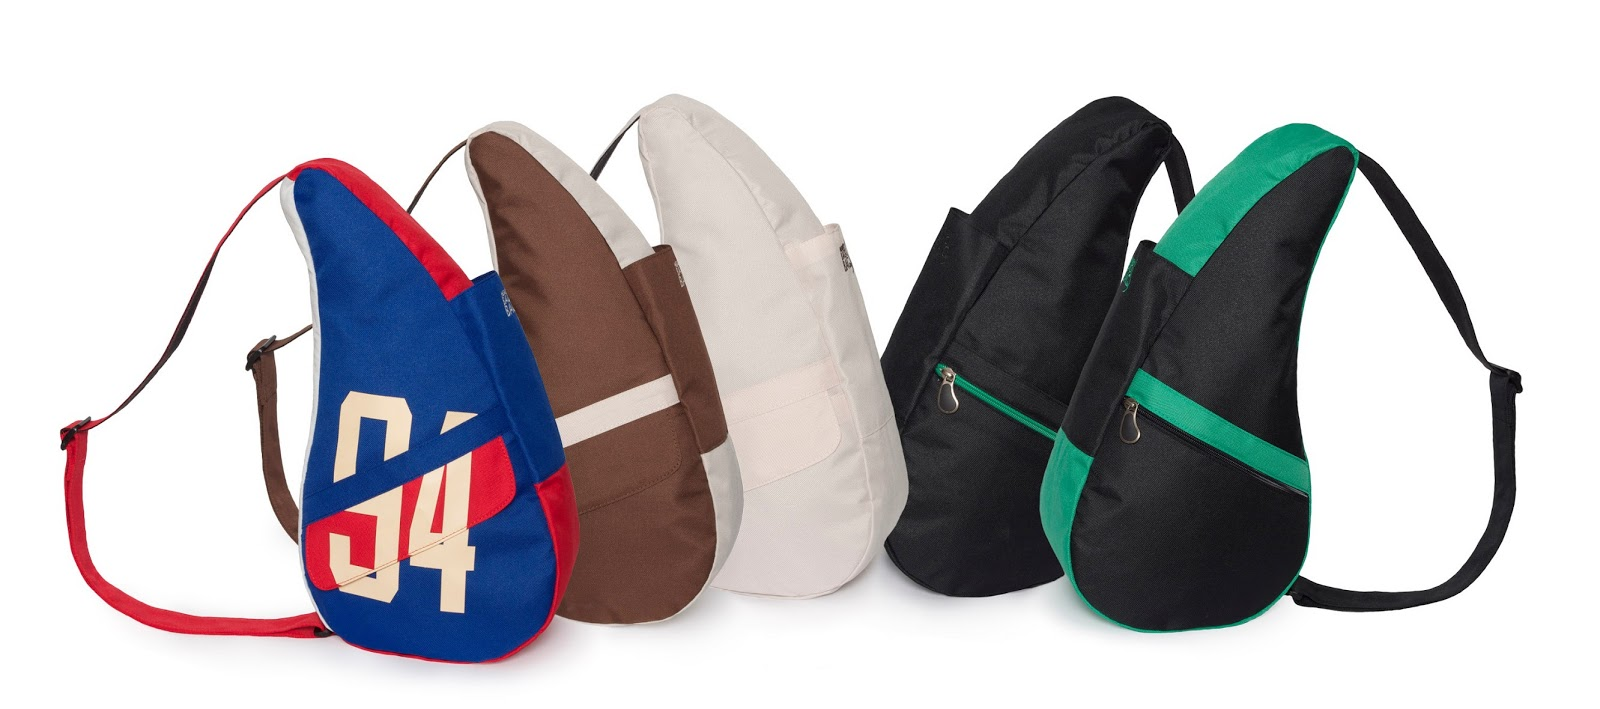 The Healthy Back Bag Company, Healing Back Pain, Healthy